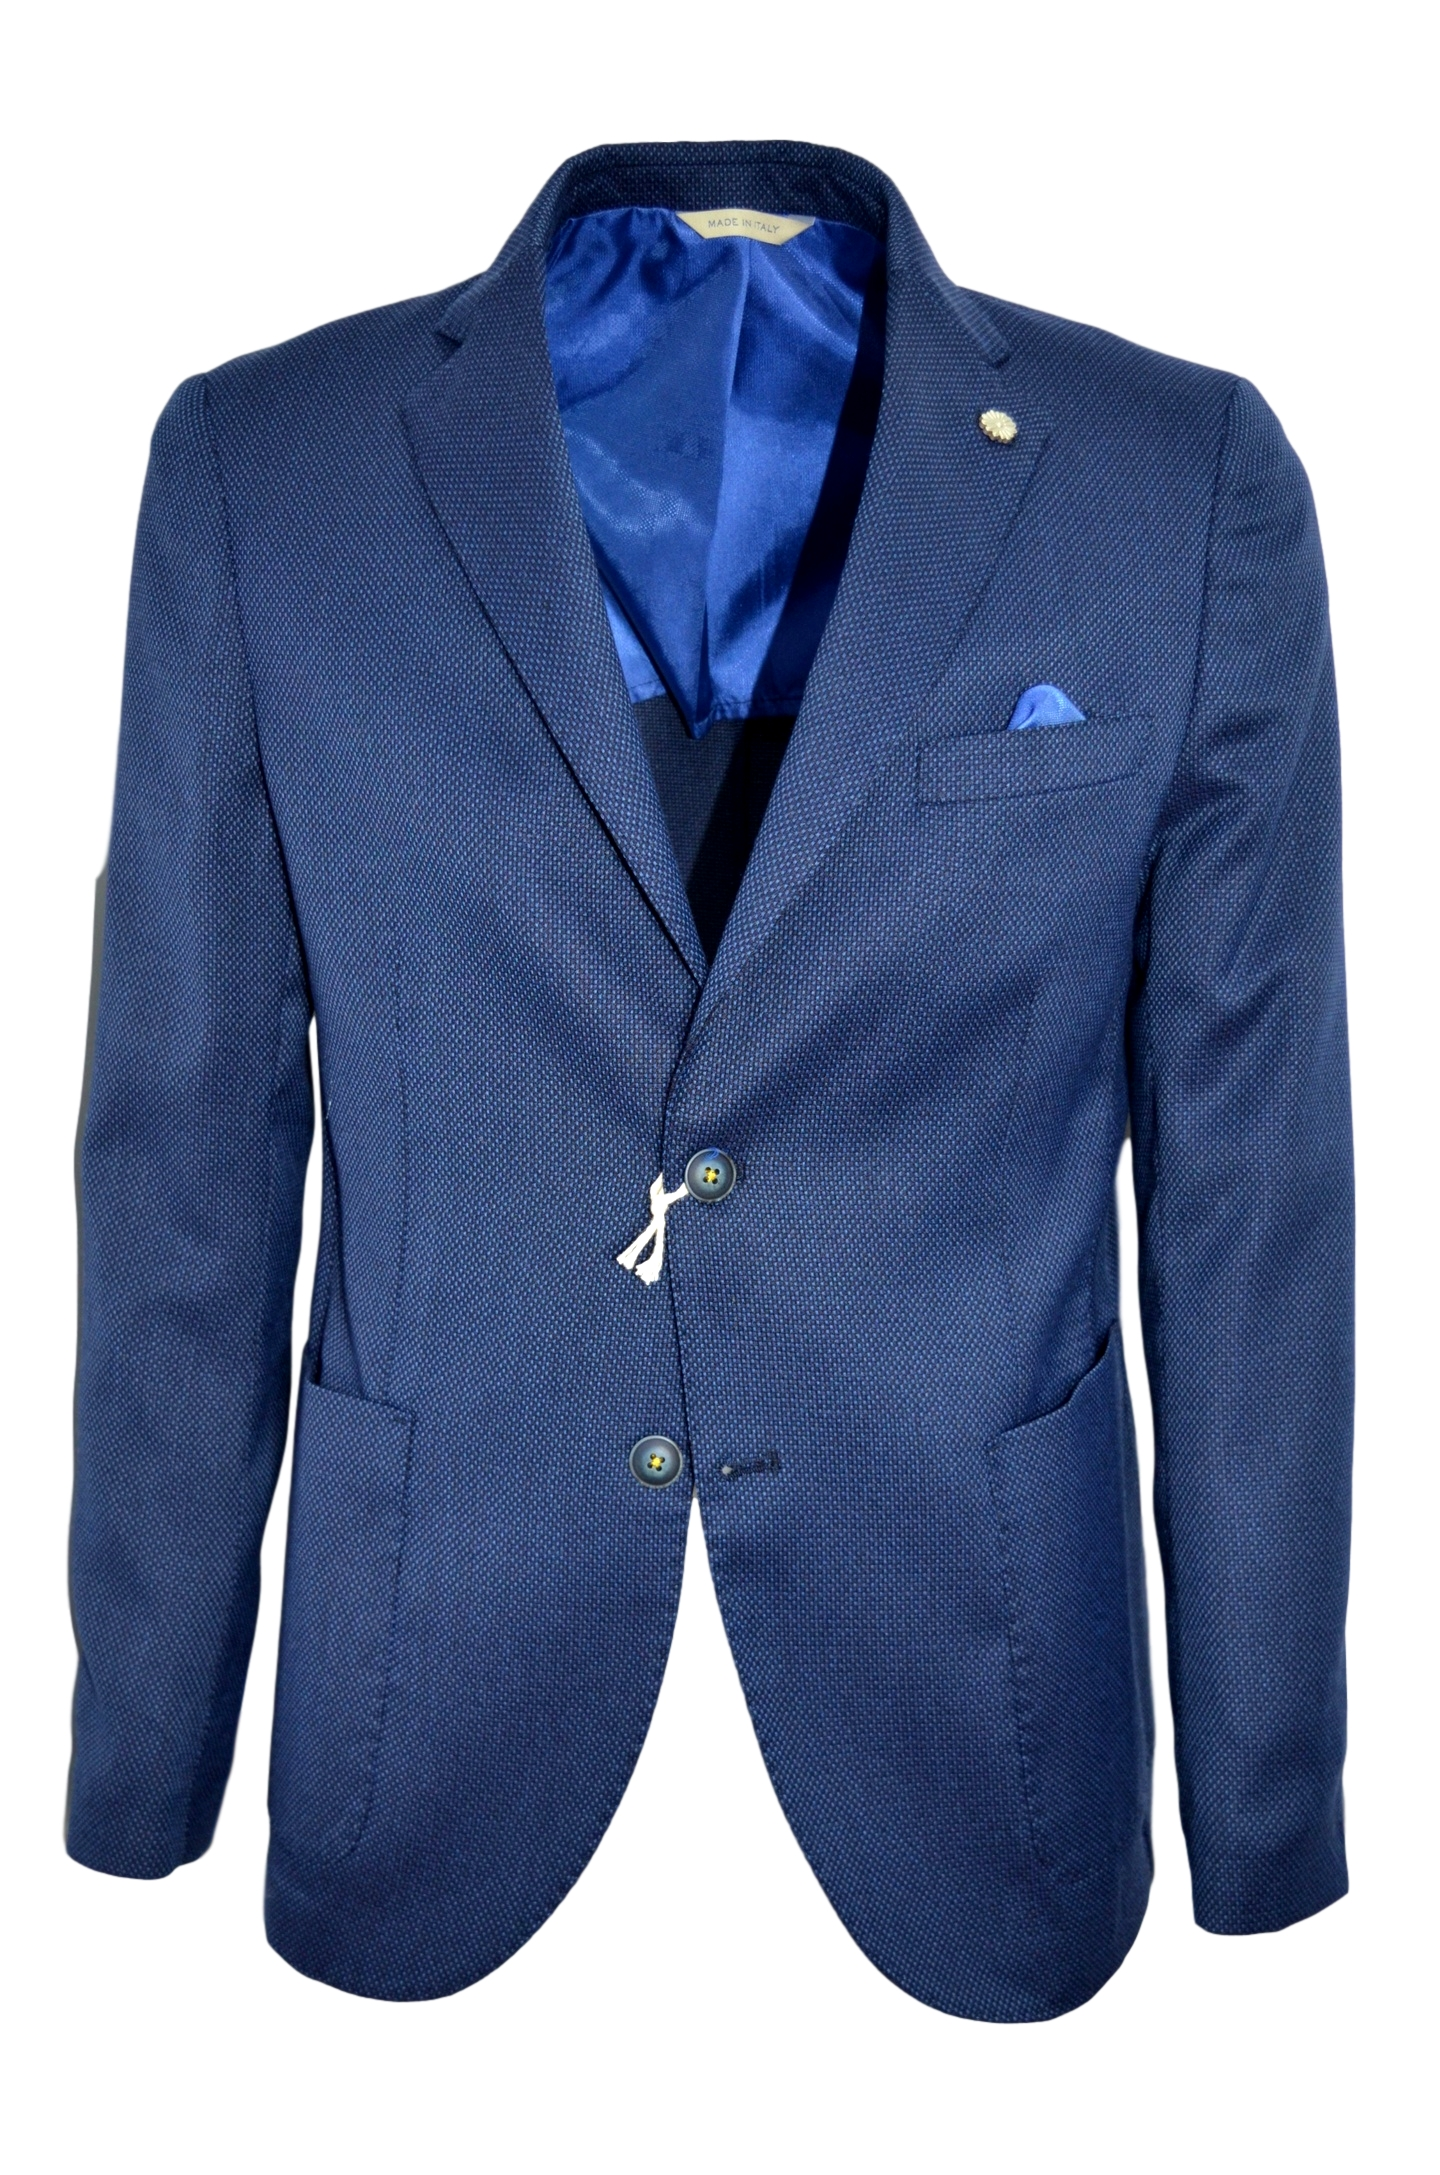 ALESSANDRO GILLES GIACCA UOMO SLIM FIT COLORE BLU G214